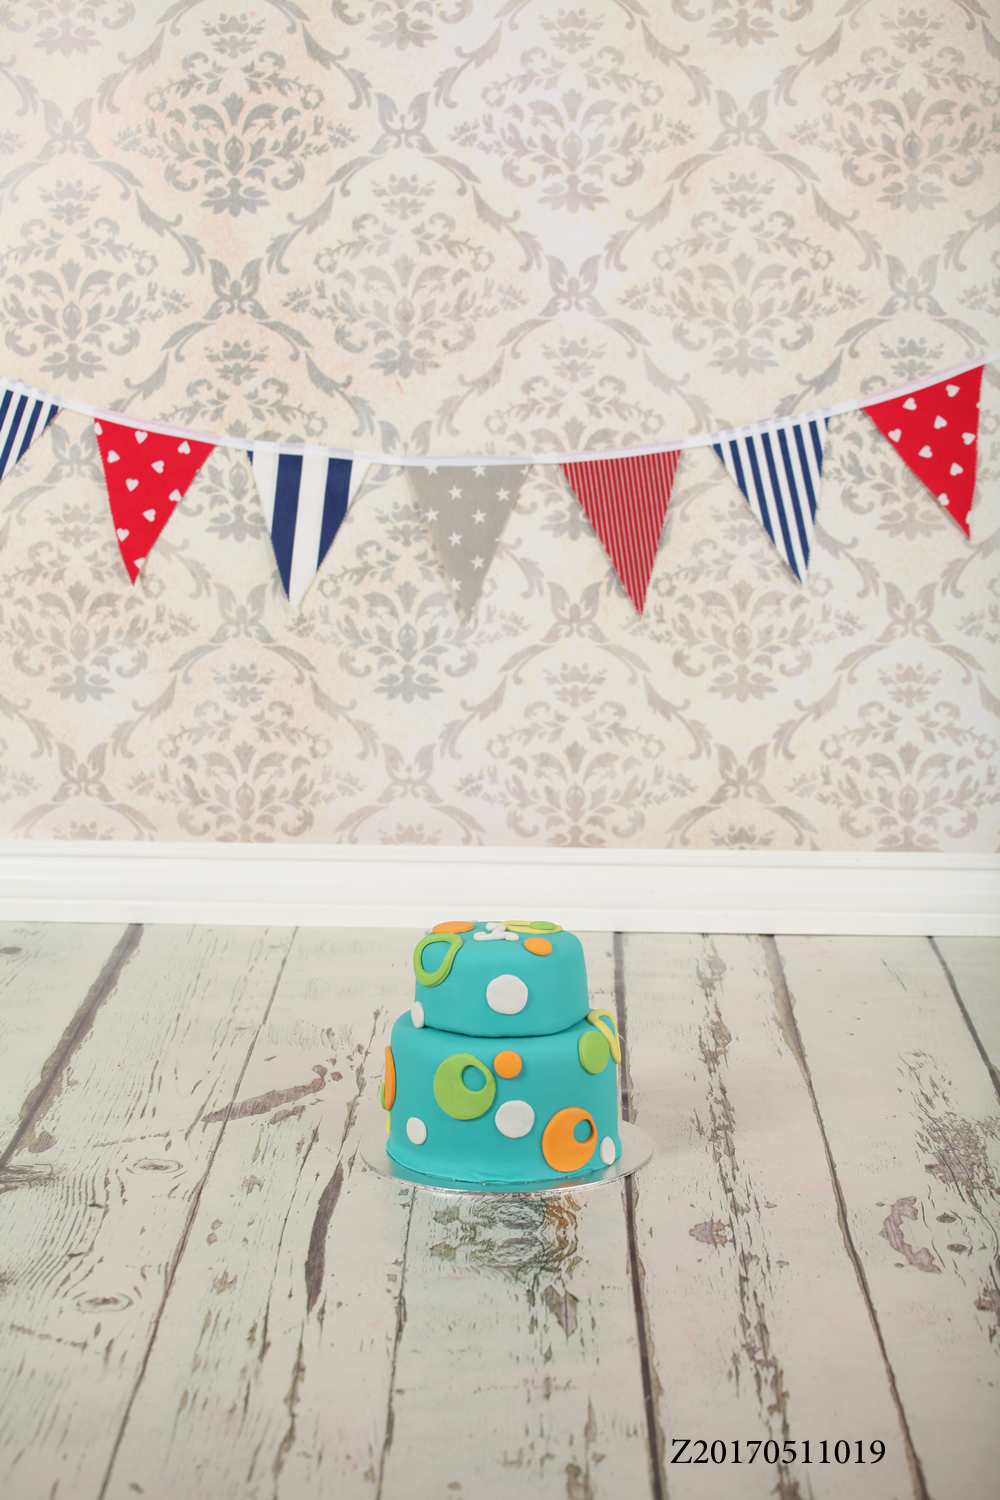 LIFE MAGIC BOX  Vinyl Colored Flag Backdrop Birthday Party Background Fotografia Photography Backdrops Photocall see thru tip over box wooden dove box magic trick stage magic close up comedy dove magic accessories 81313